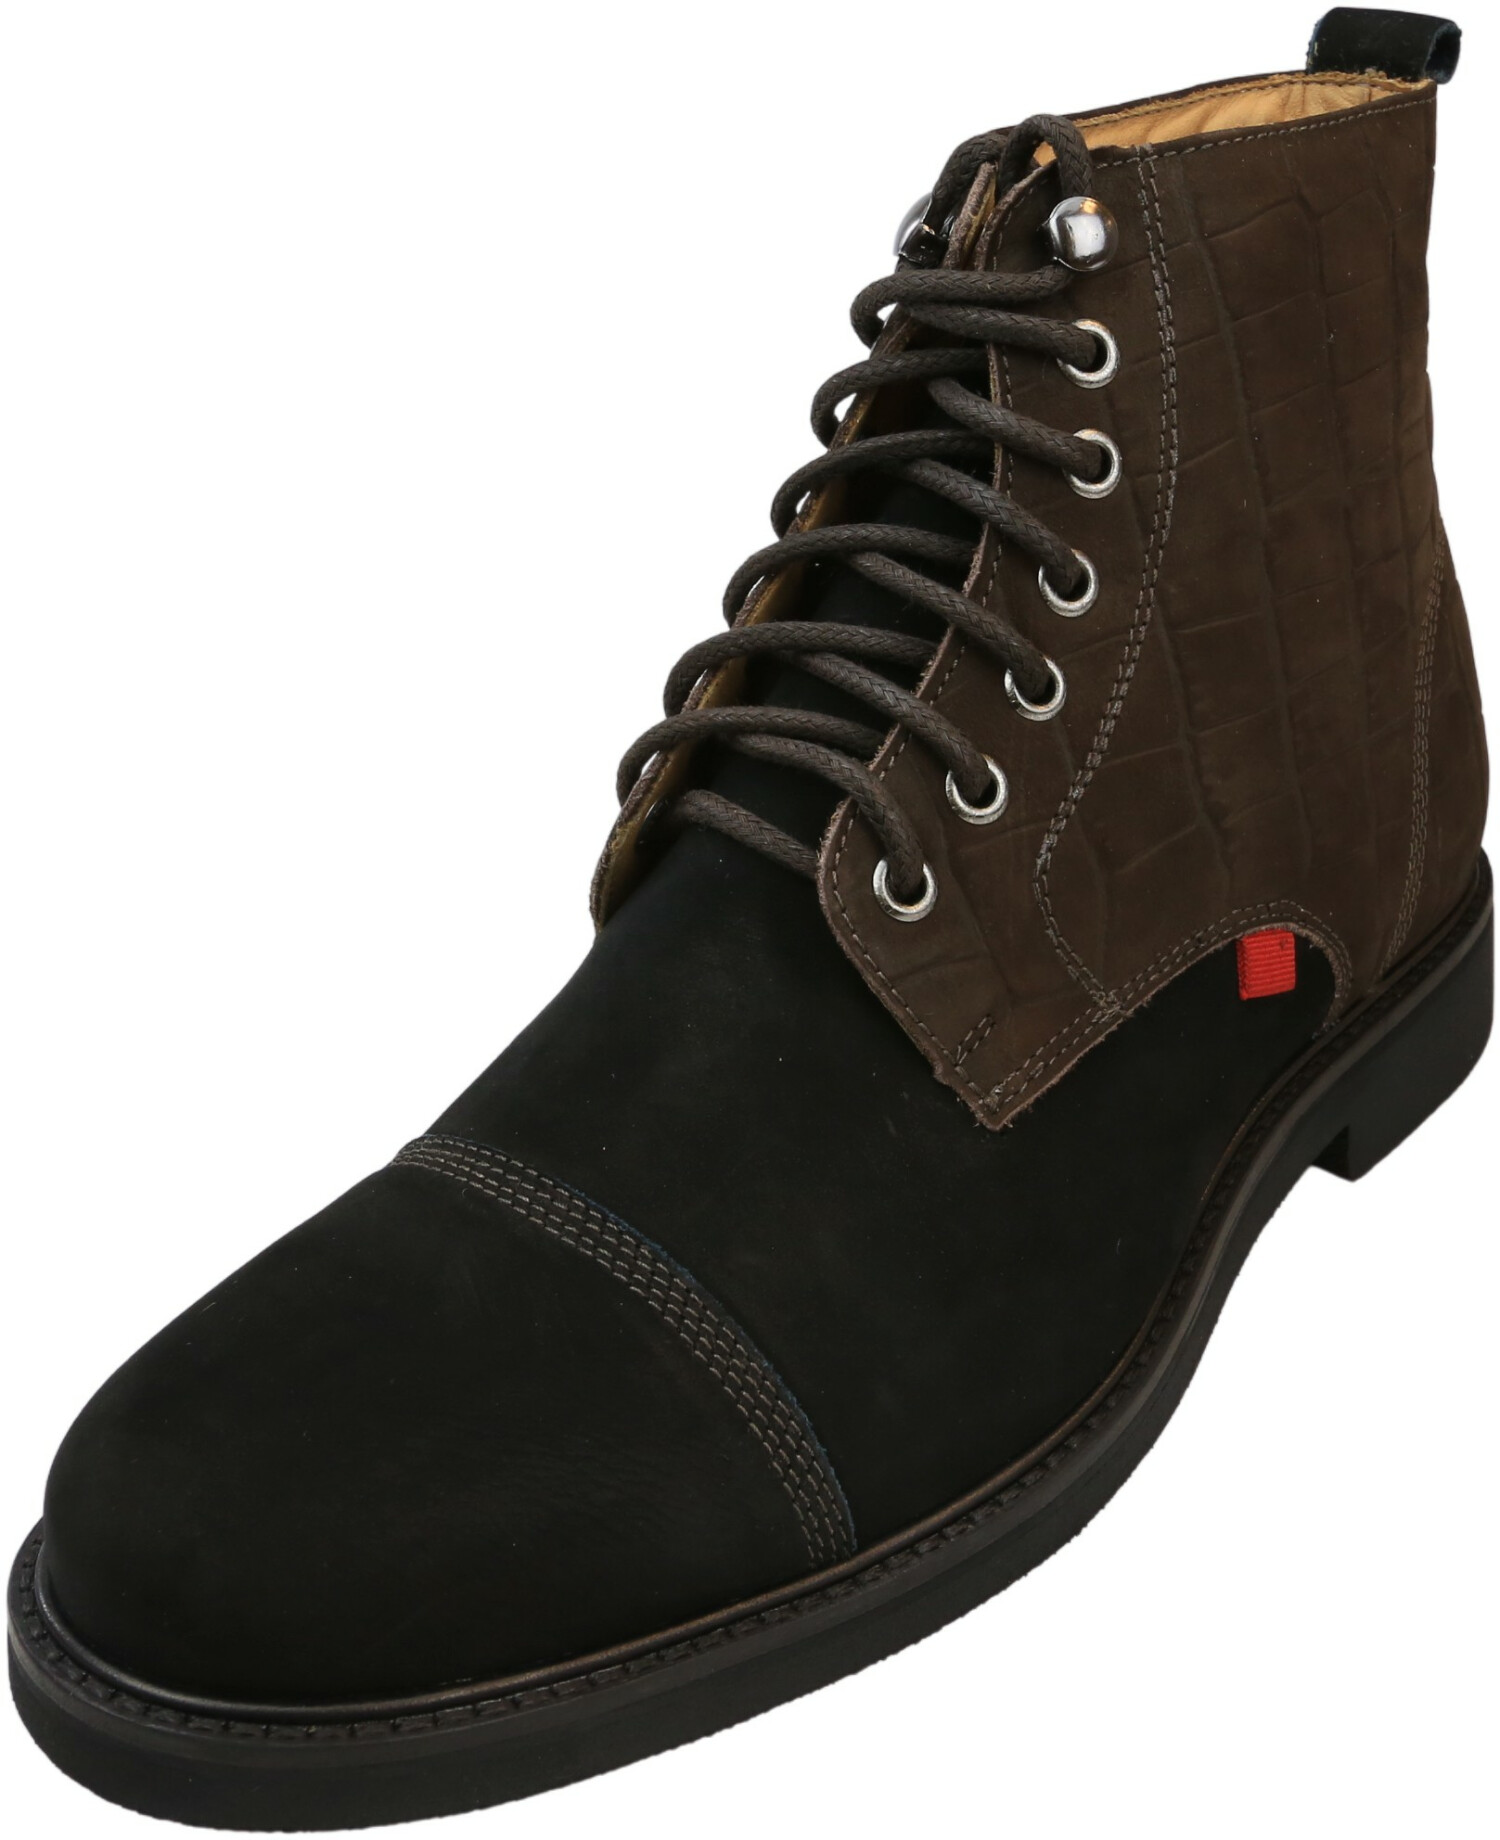 Marc Joseph New York Men's Lincoln Black Nobuck / Brown Reptile Ankle-High Leather Oxford & Derby - 7M